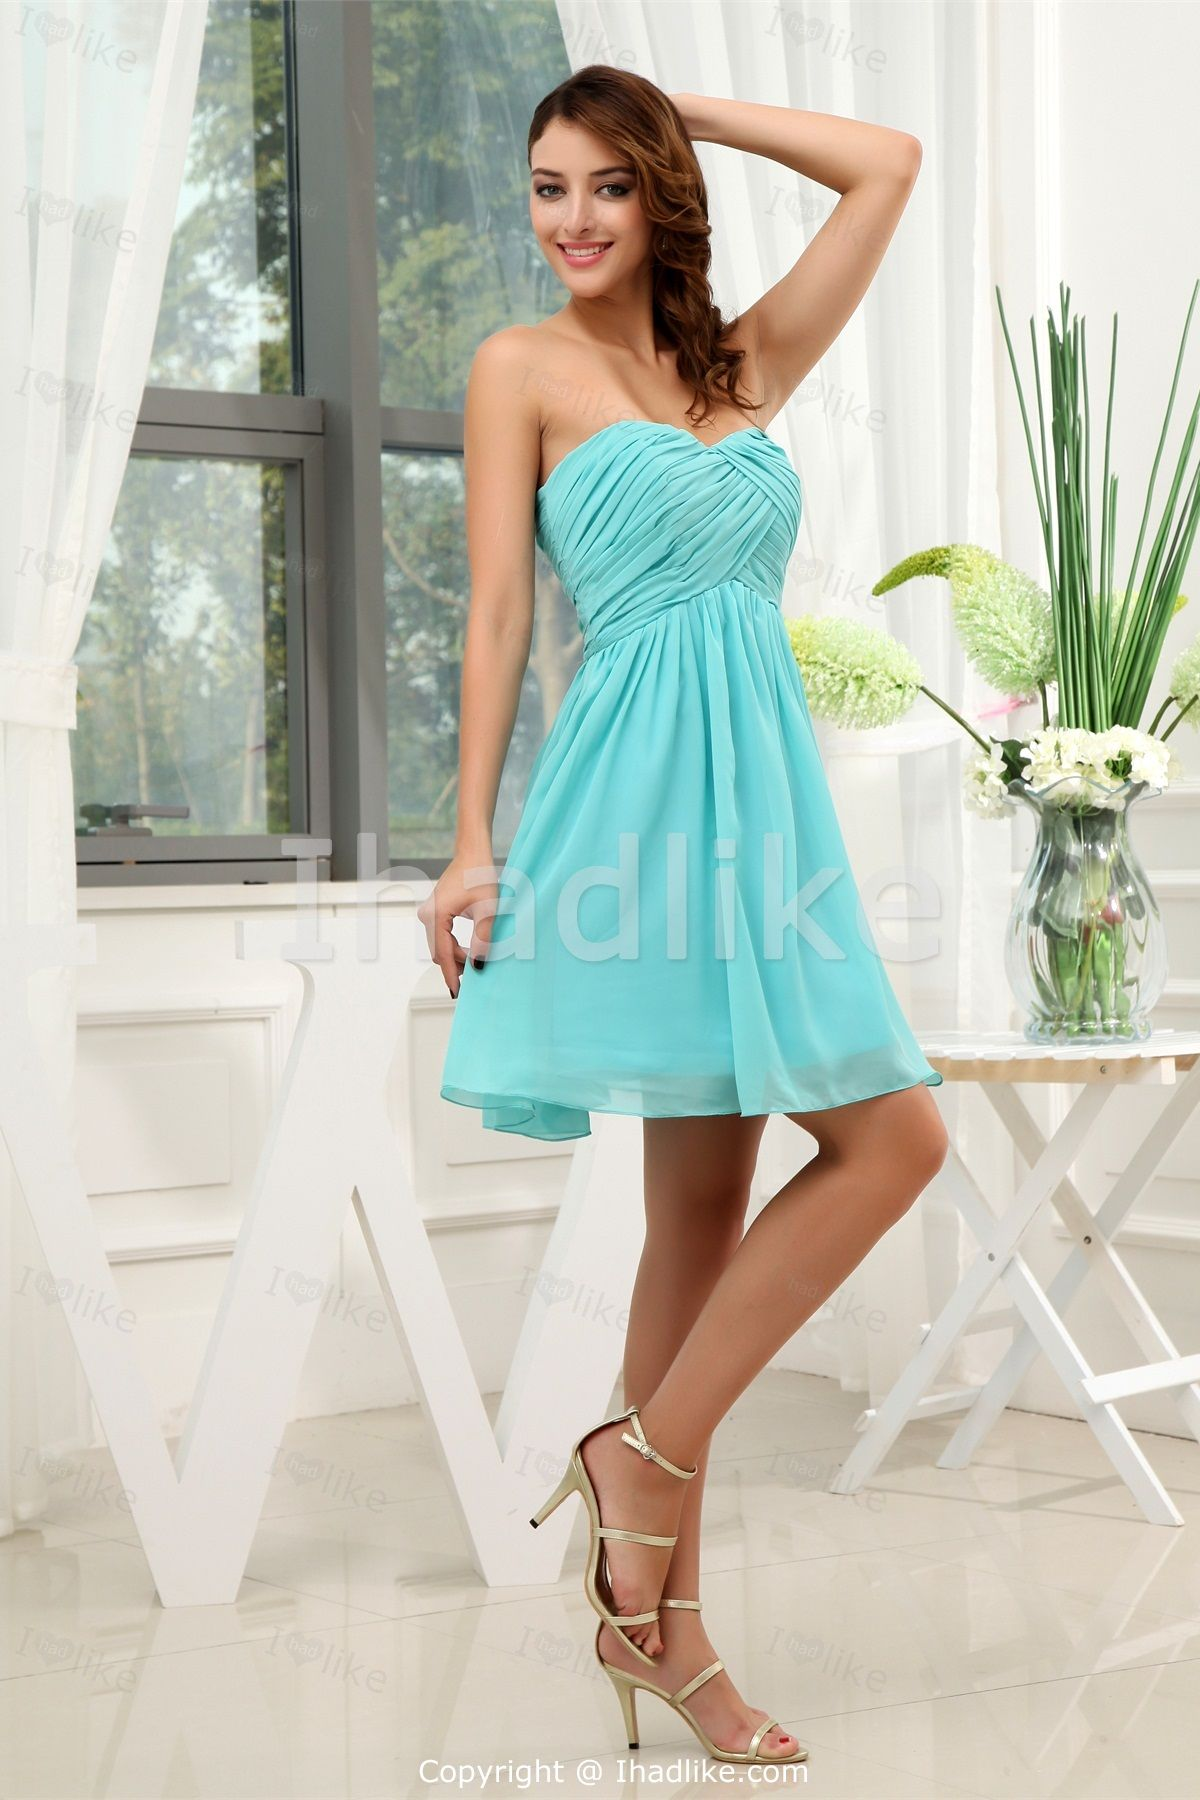 turquoise bridesmaid dresses - Google Search | Sisters | Pinterest ...